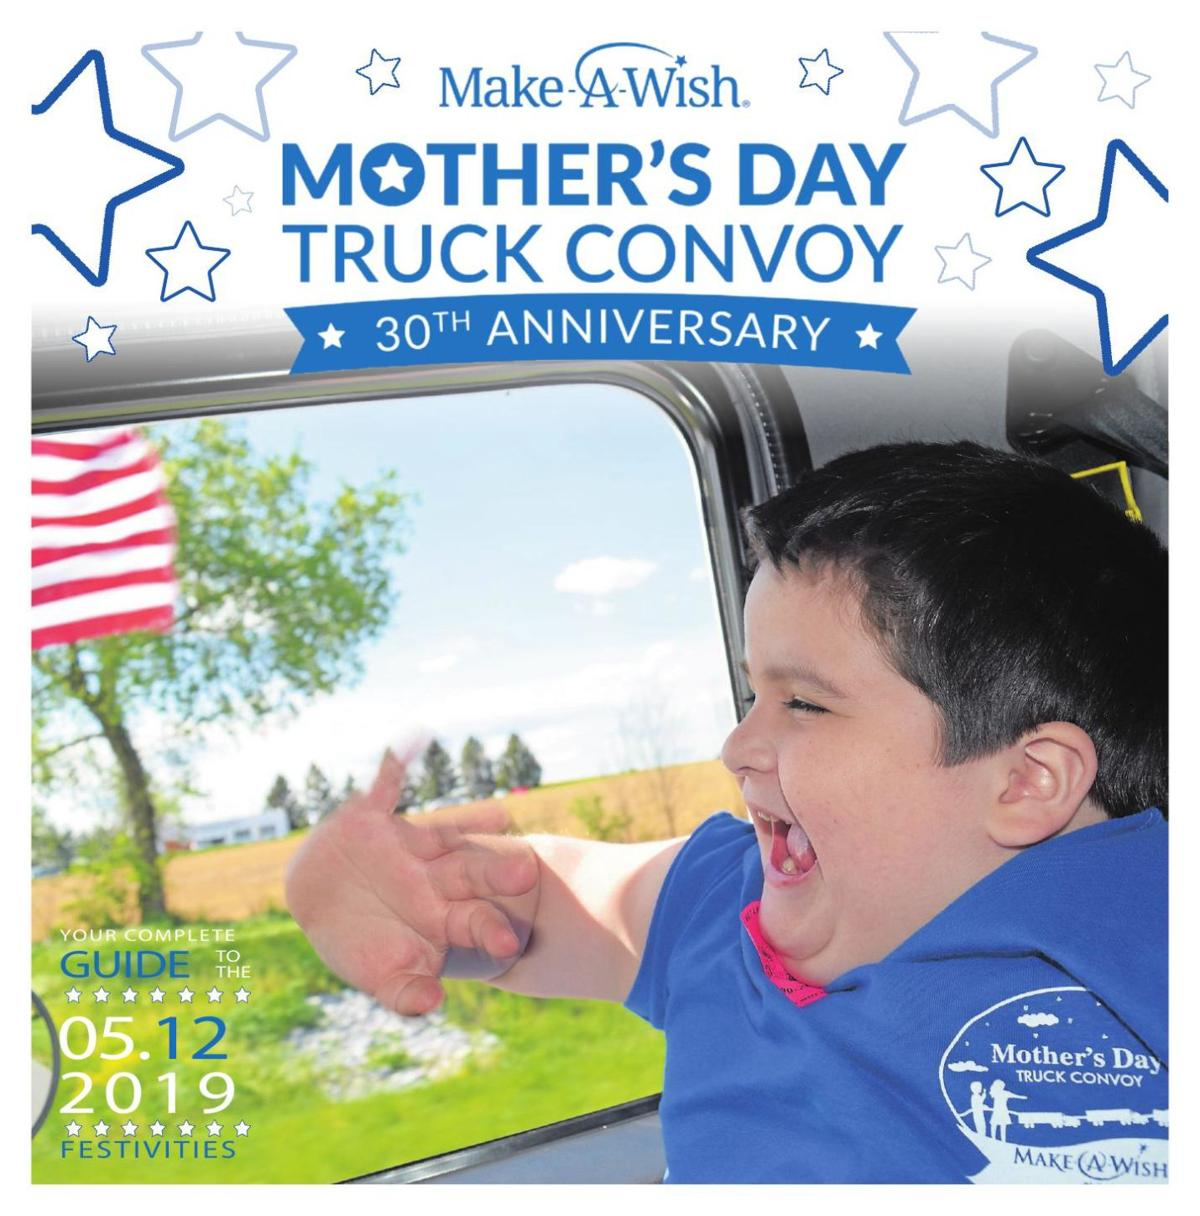 Make-A-Wish Mother's Day Truck Convoy